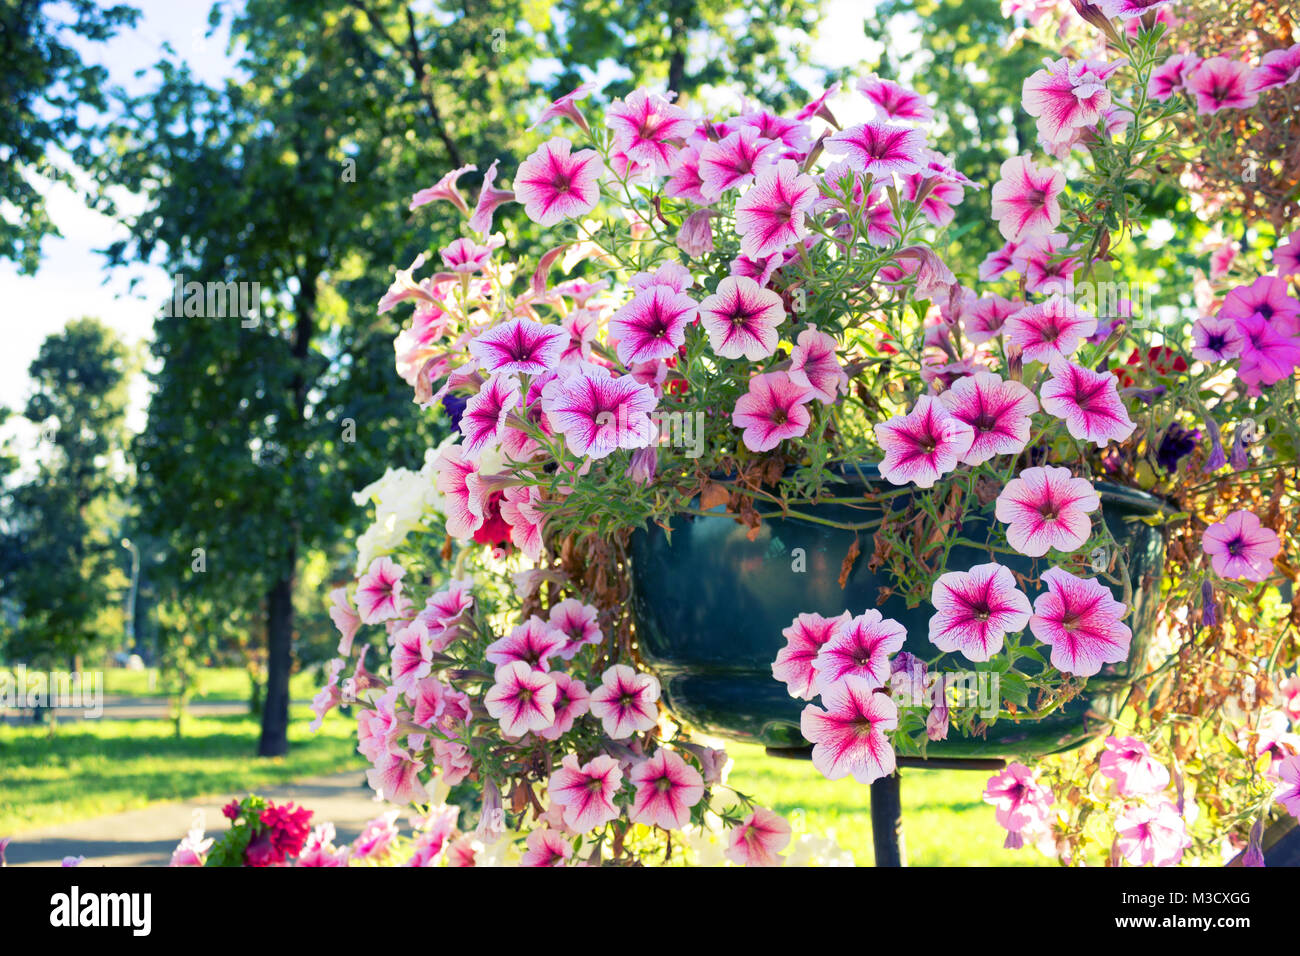 Pink flowers on the street in flower pots stock photo 174231920 alamy pink flowers on the street in flower pots mightylinksfo